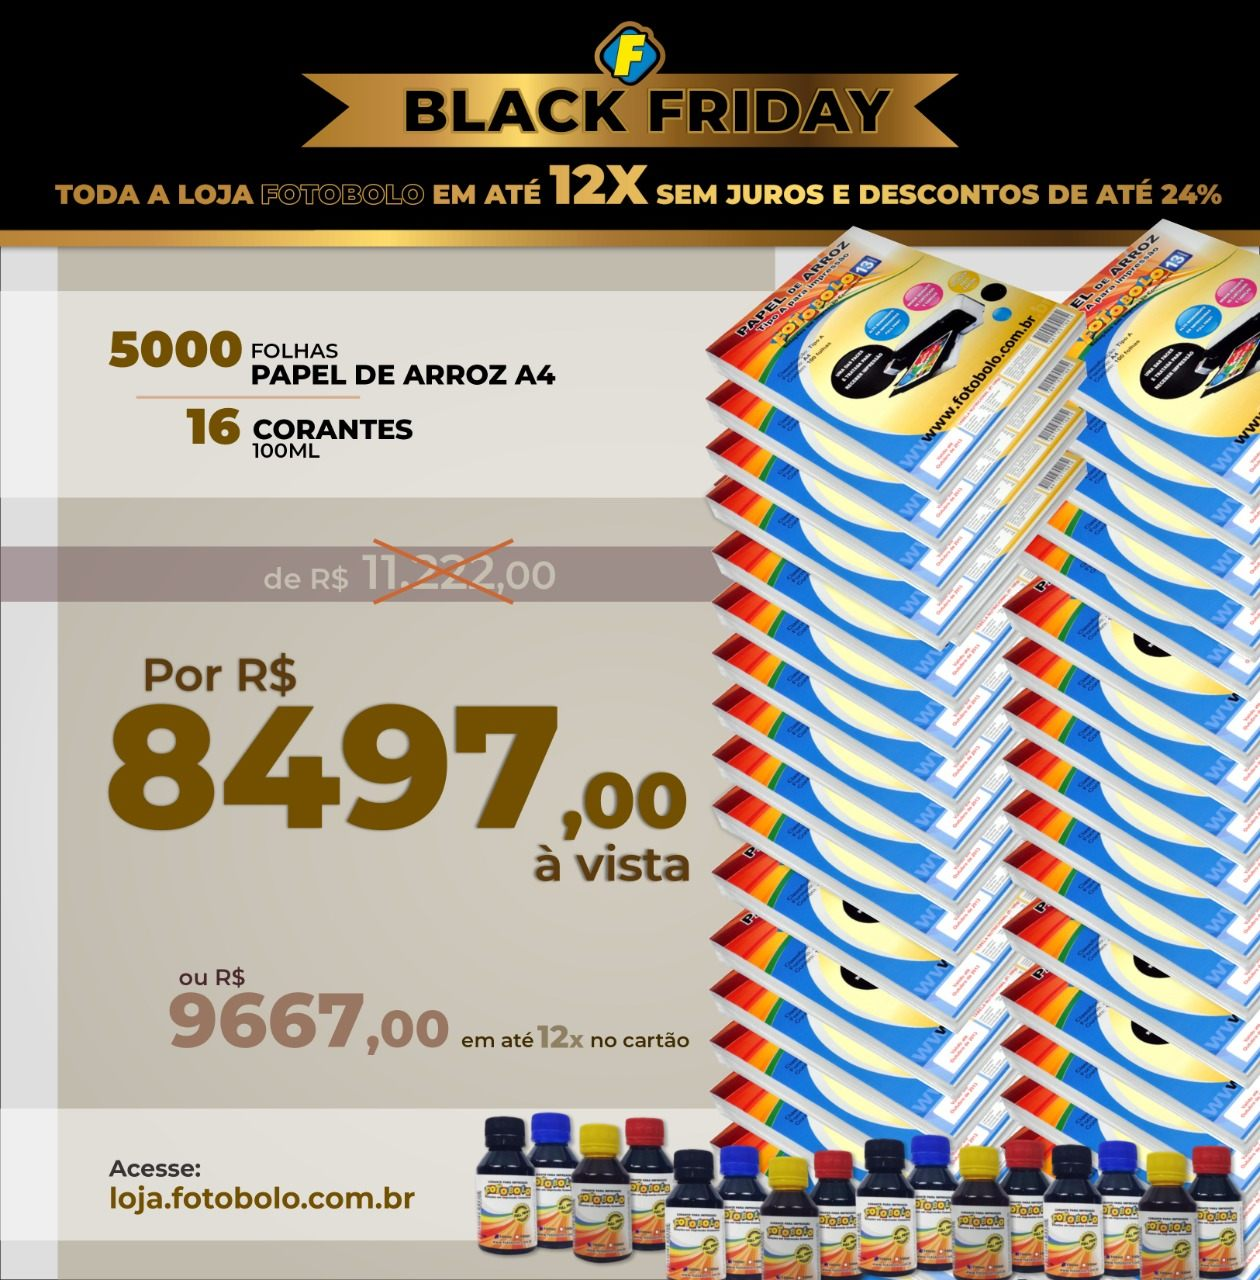 COMBO BLACK FRIDAY - 5000 Papéis Arroz TIPO A A4 + 4 Kits Corante 100ml (16 Frascos + 16 Bicos)